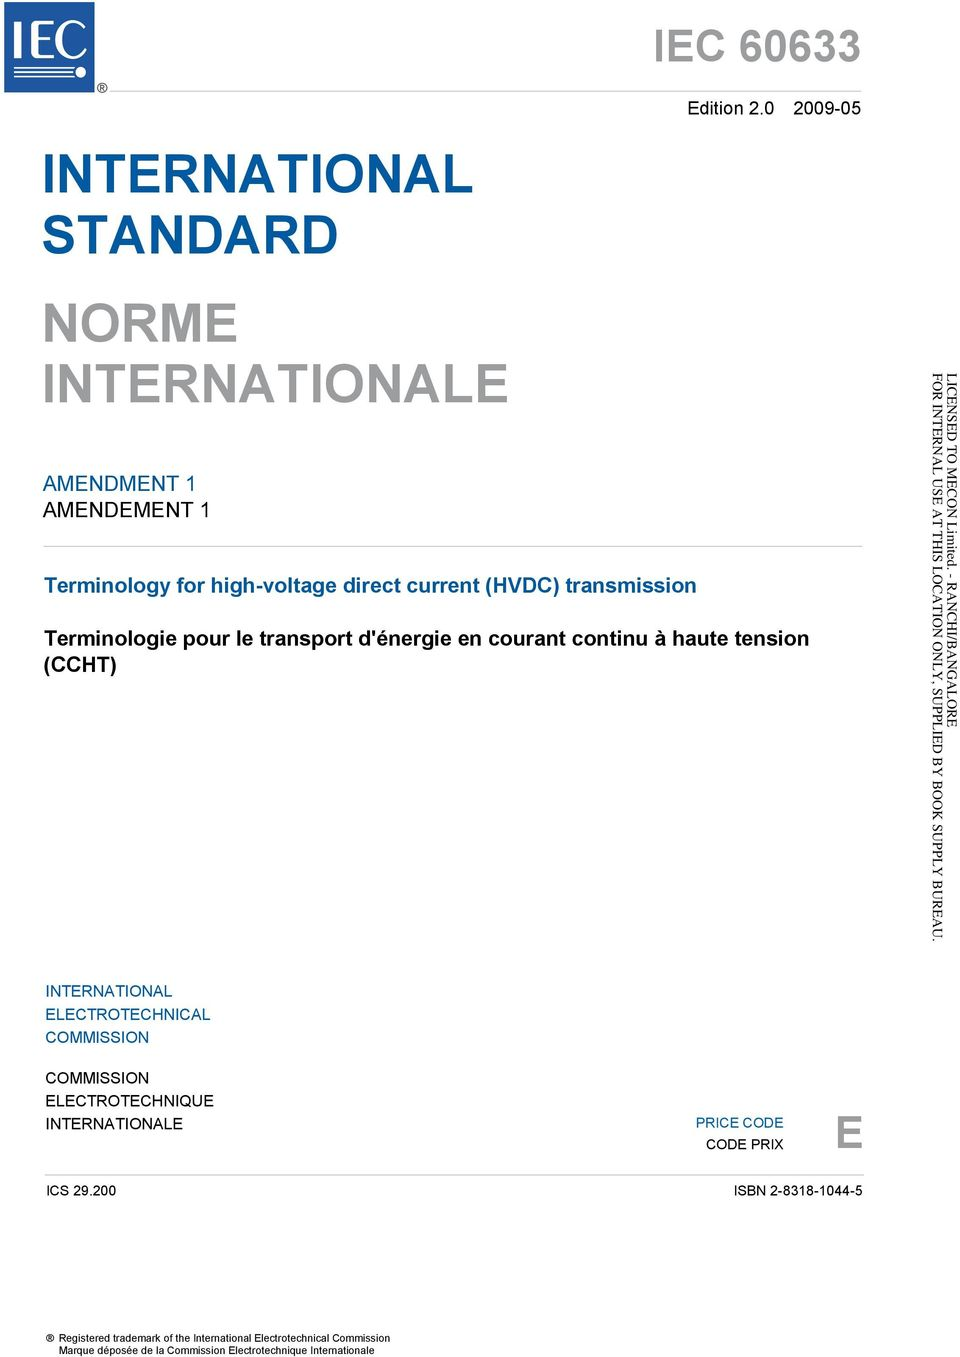 transmission Terminologie pour le transport d'énergie en courant continu à haute tension (CCHT) INTERNATIONAL ELECTROTECHNICAL